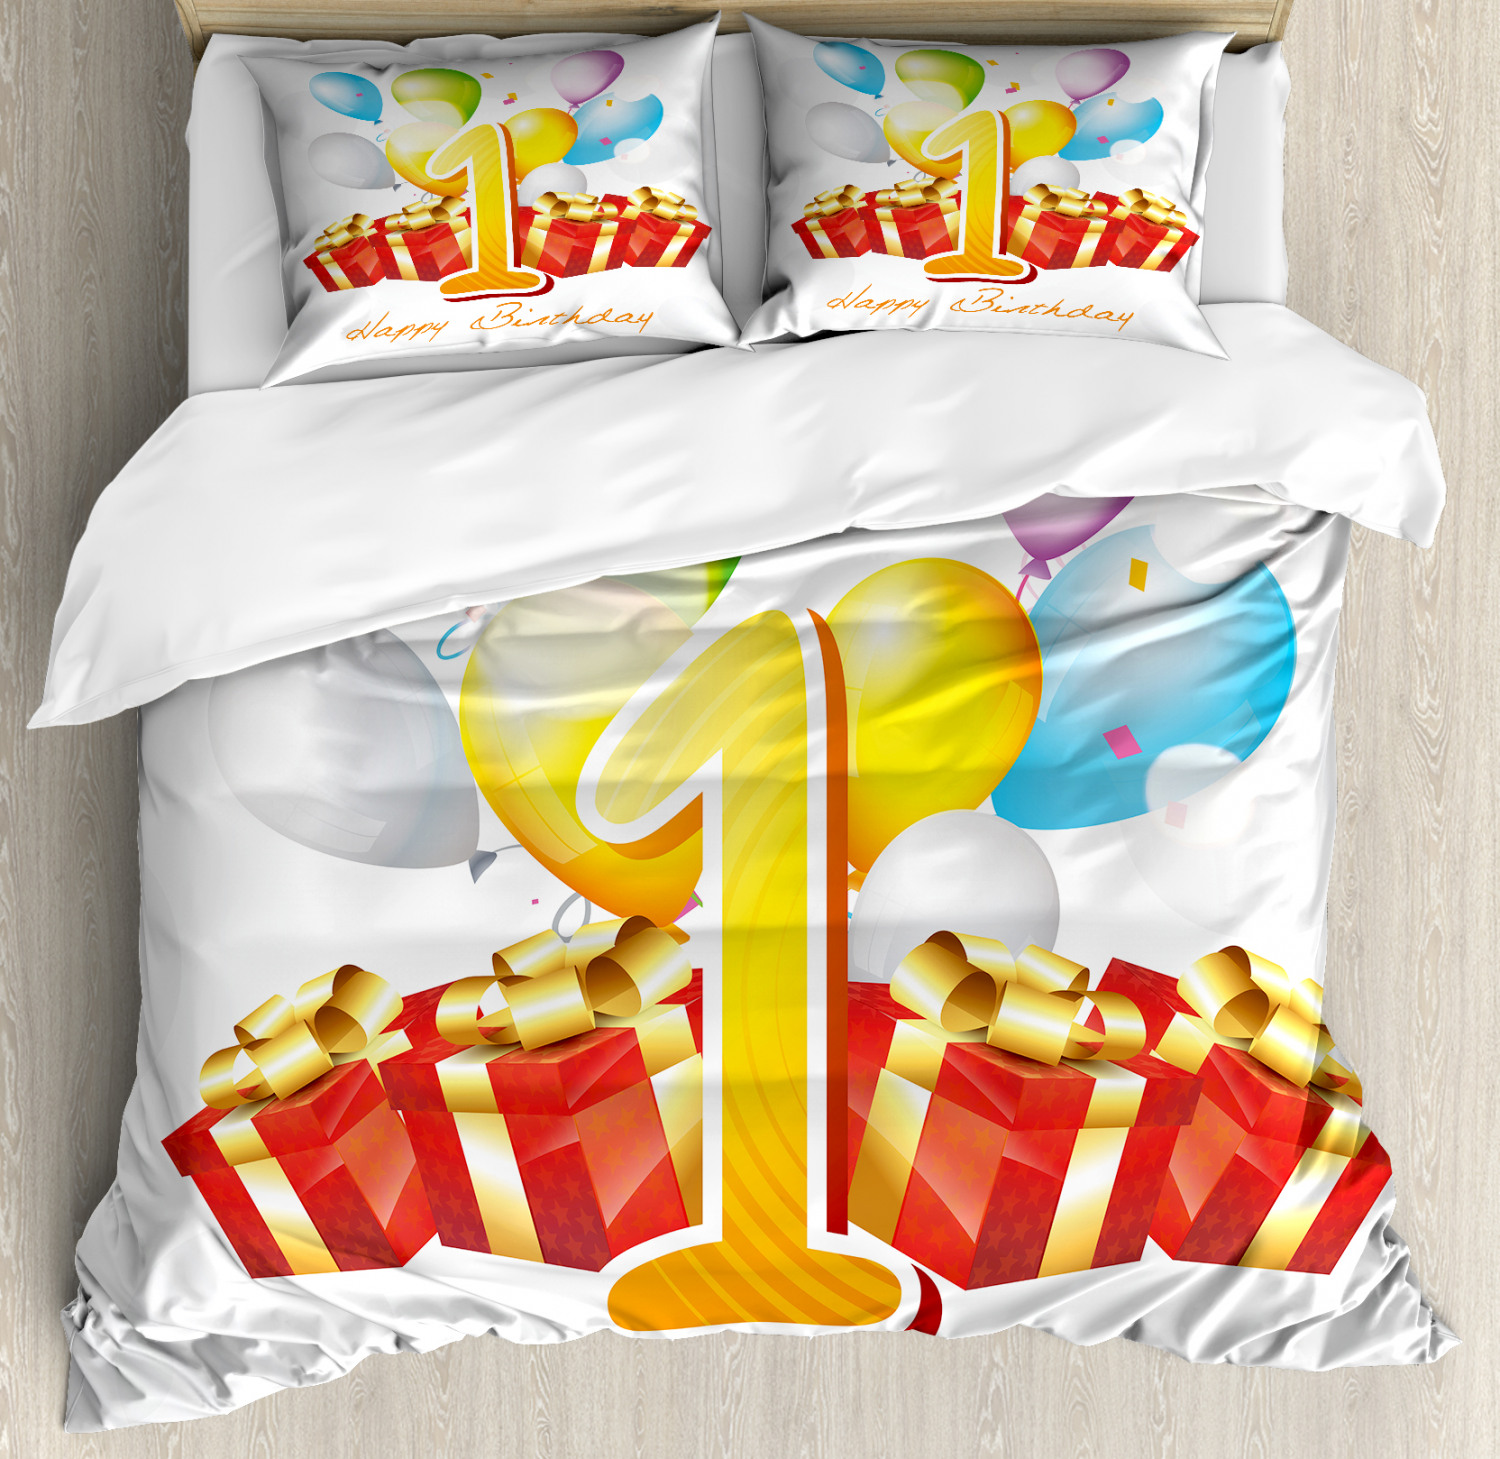 Red Yellow Duvet Cover Set with Pillow Shams First Birthday Party Print